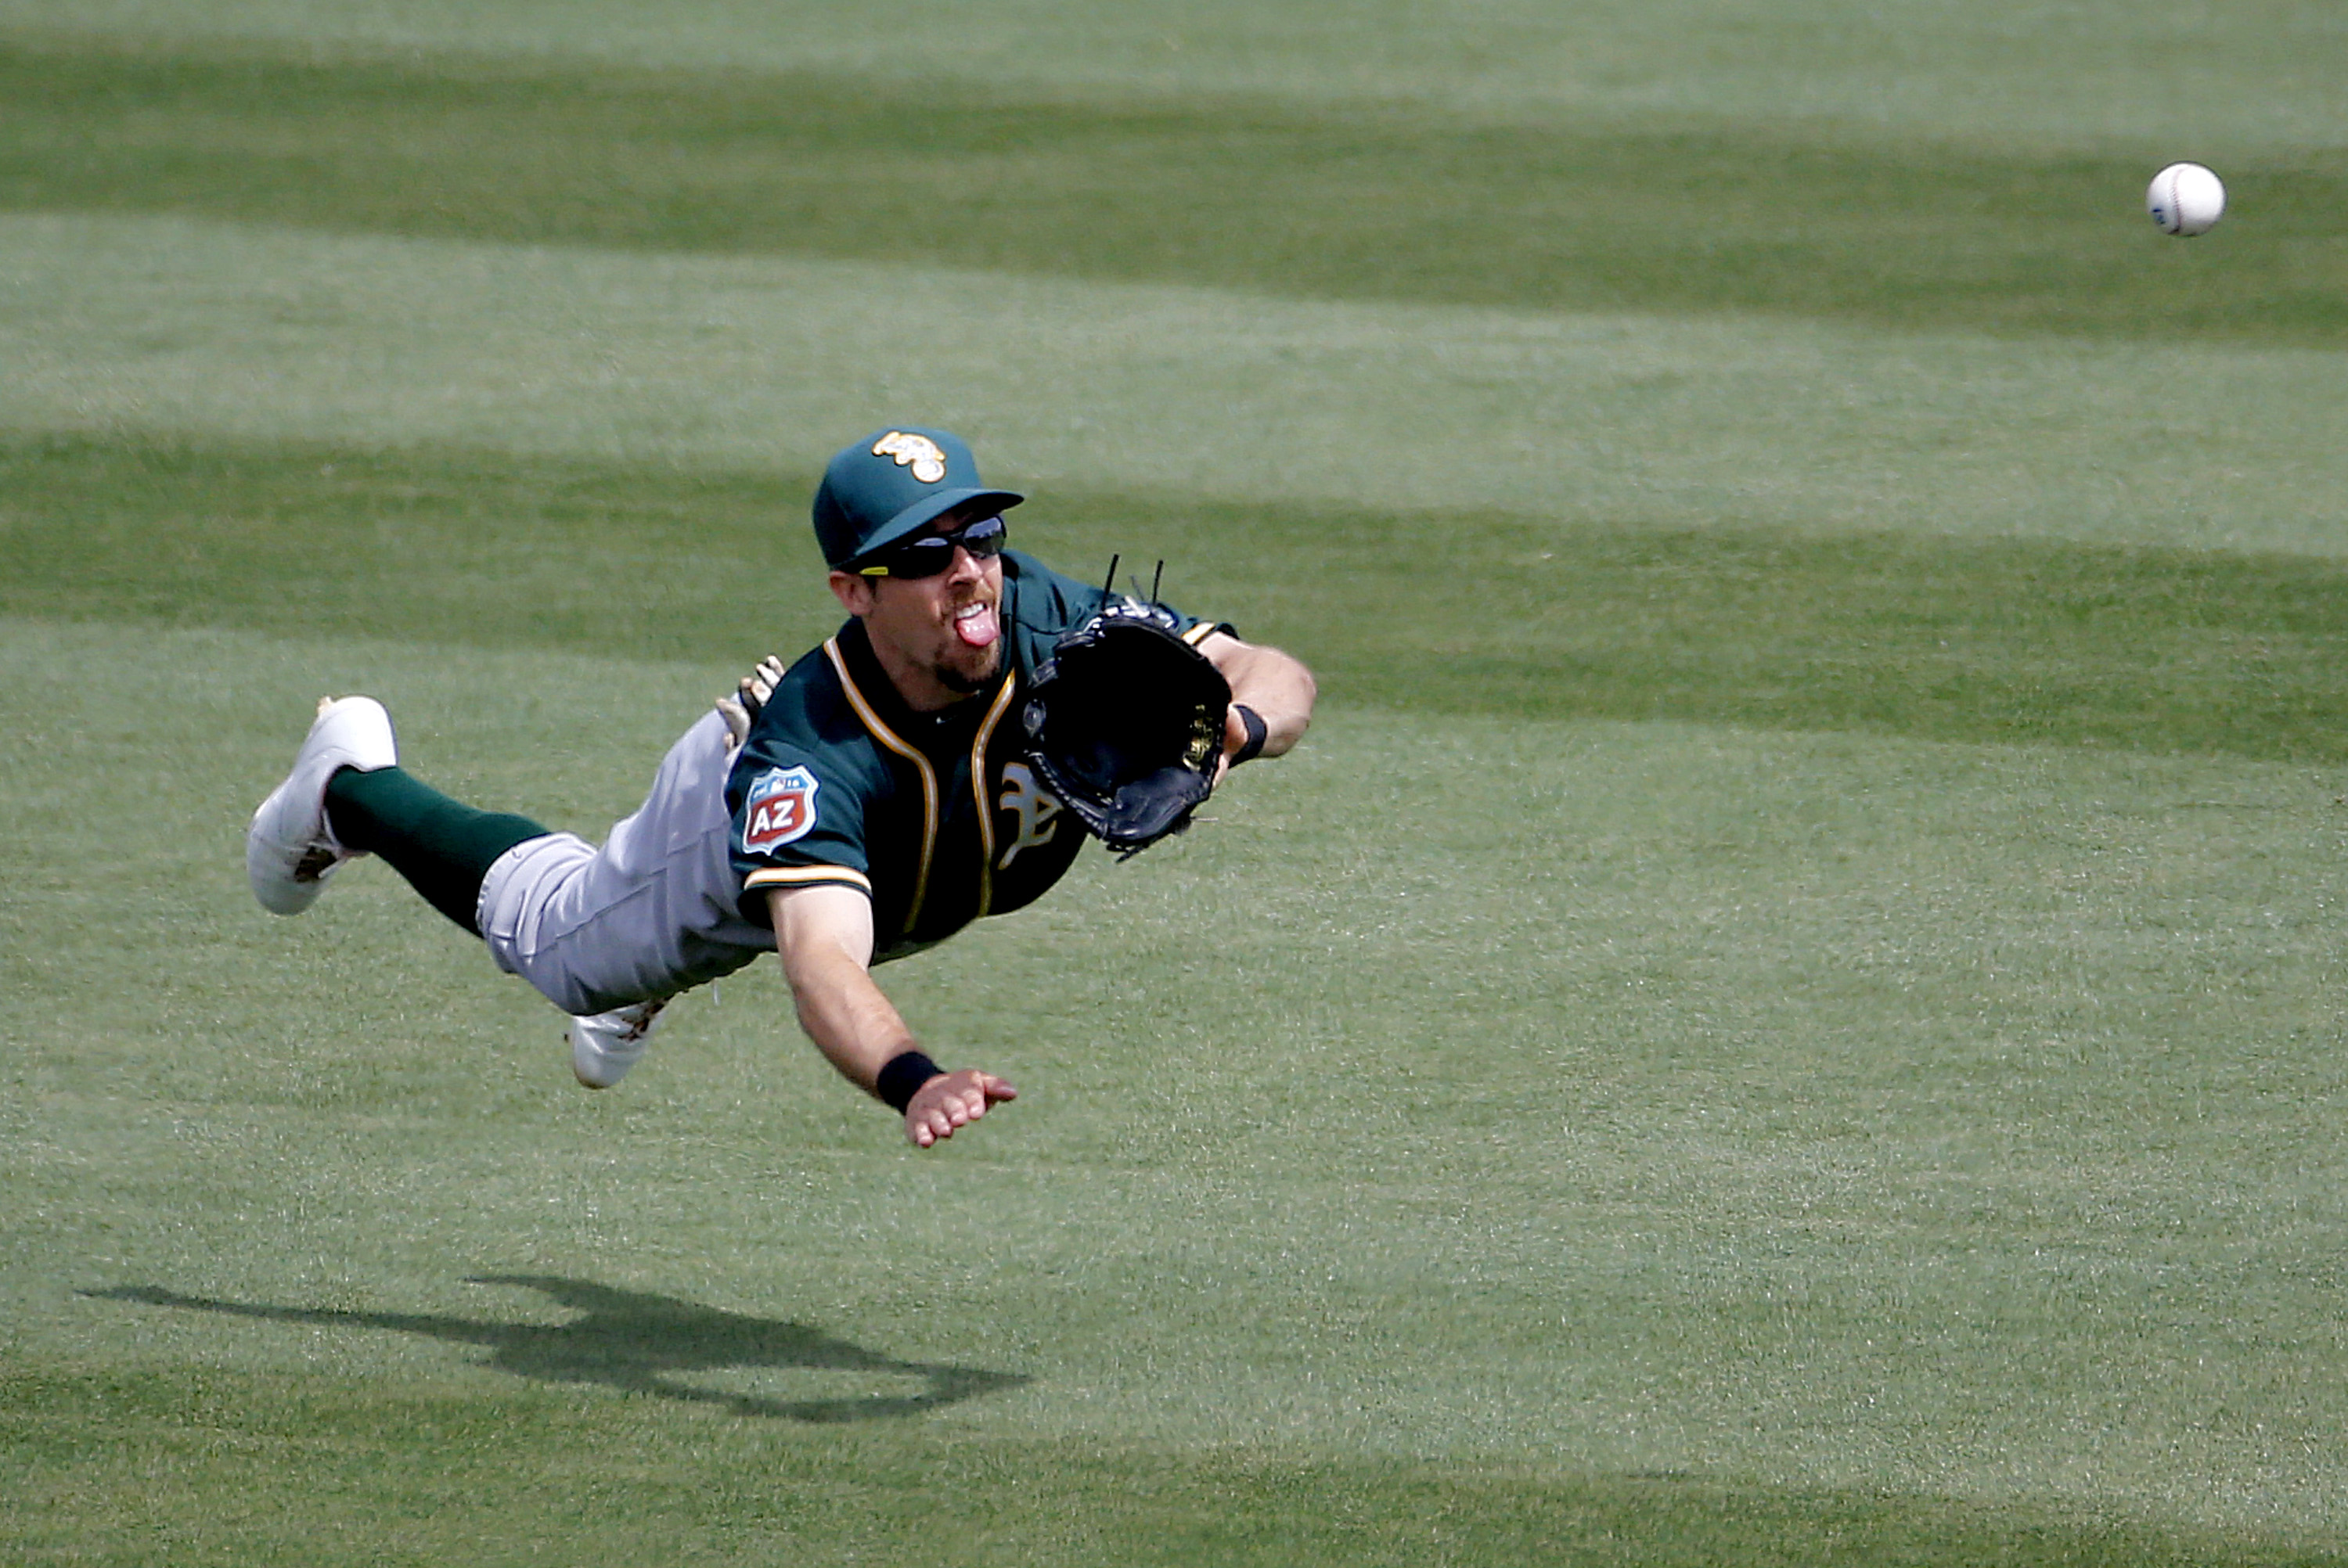 Oakland Athletics BIlly Burns can't make the catch on a base hit by Chicago Cubs' Miguel Montero during the second inning of a spring training baseball game, Tuesday, March 29, 2016, in Mesa, Ariz. (AP Photo/Matt York)